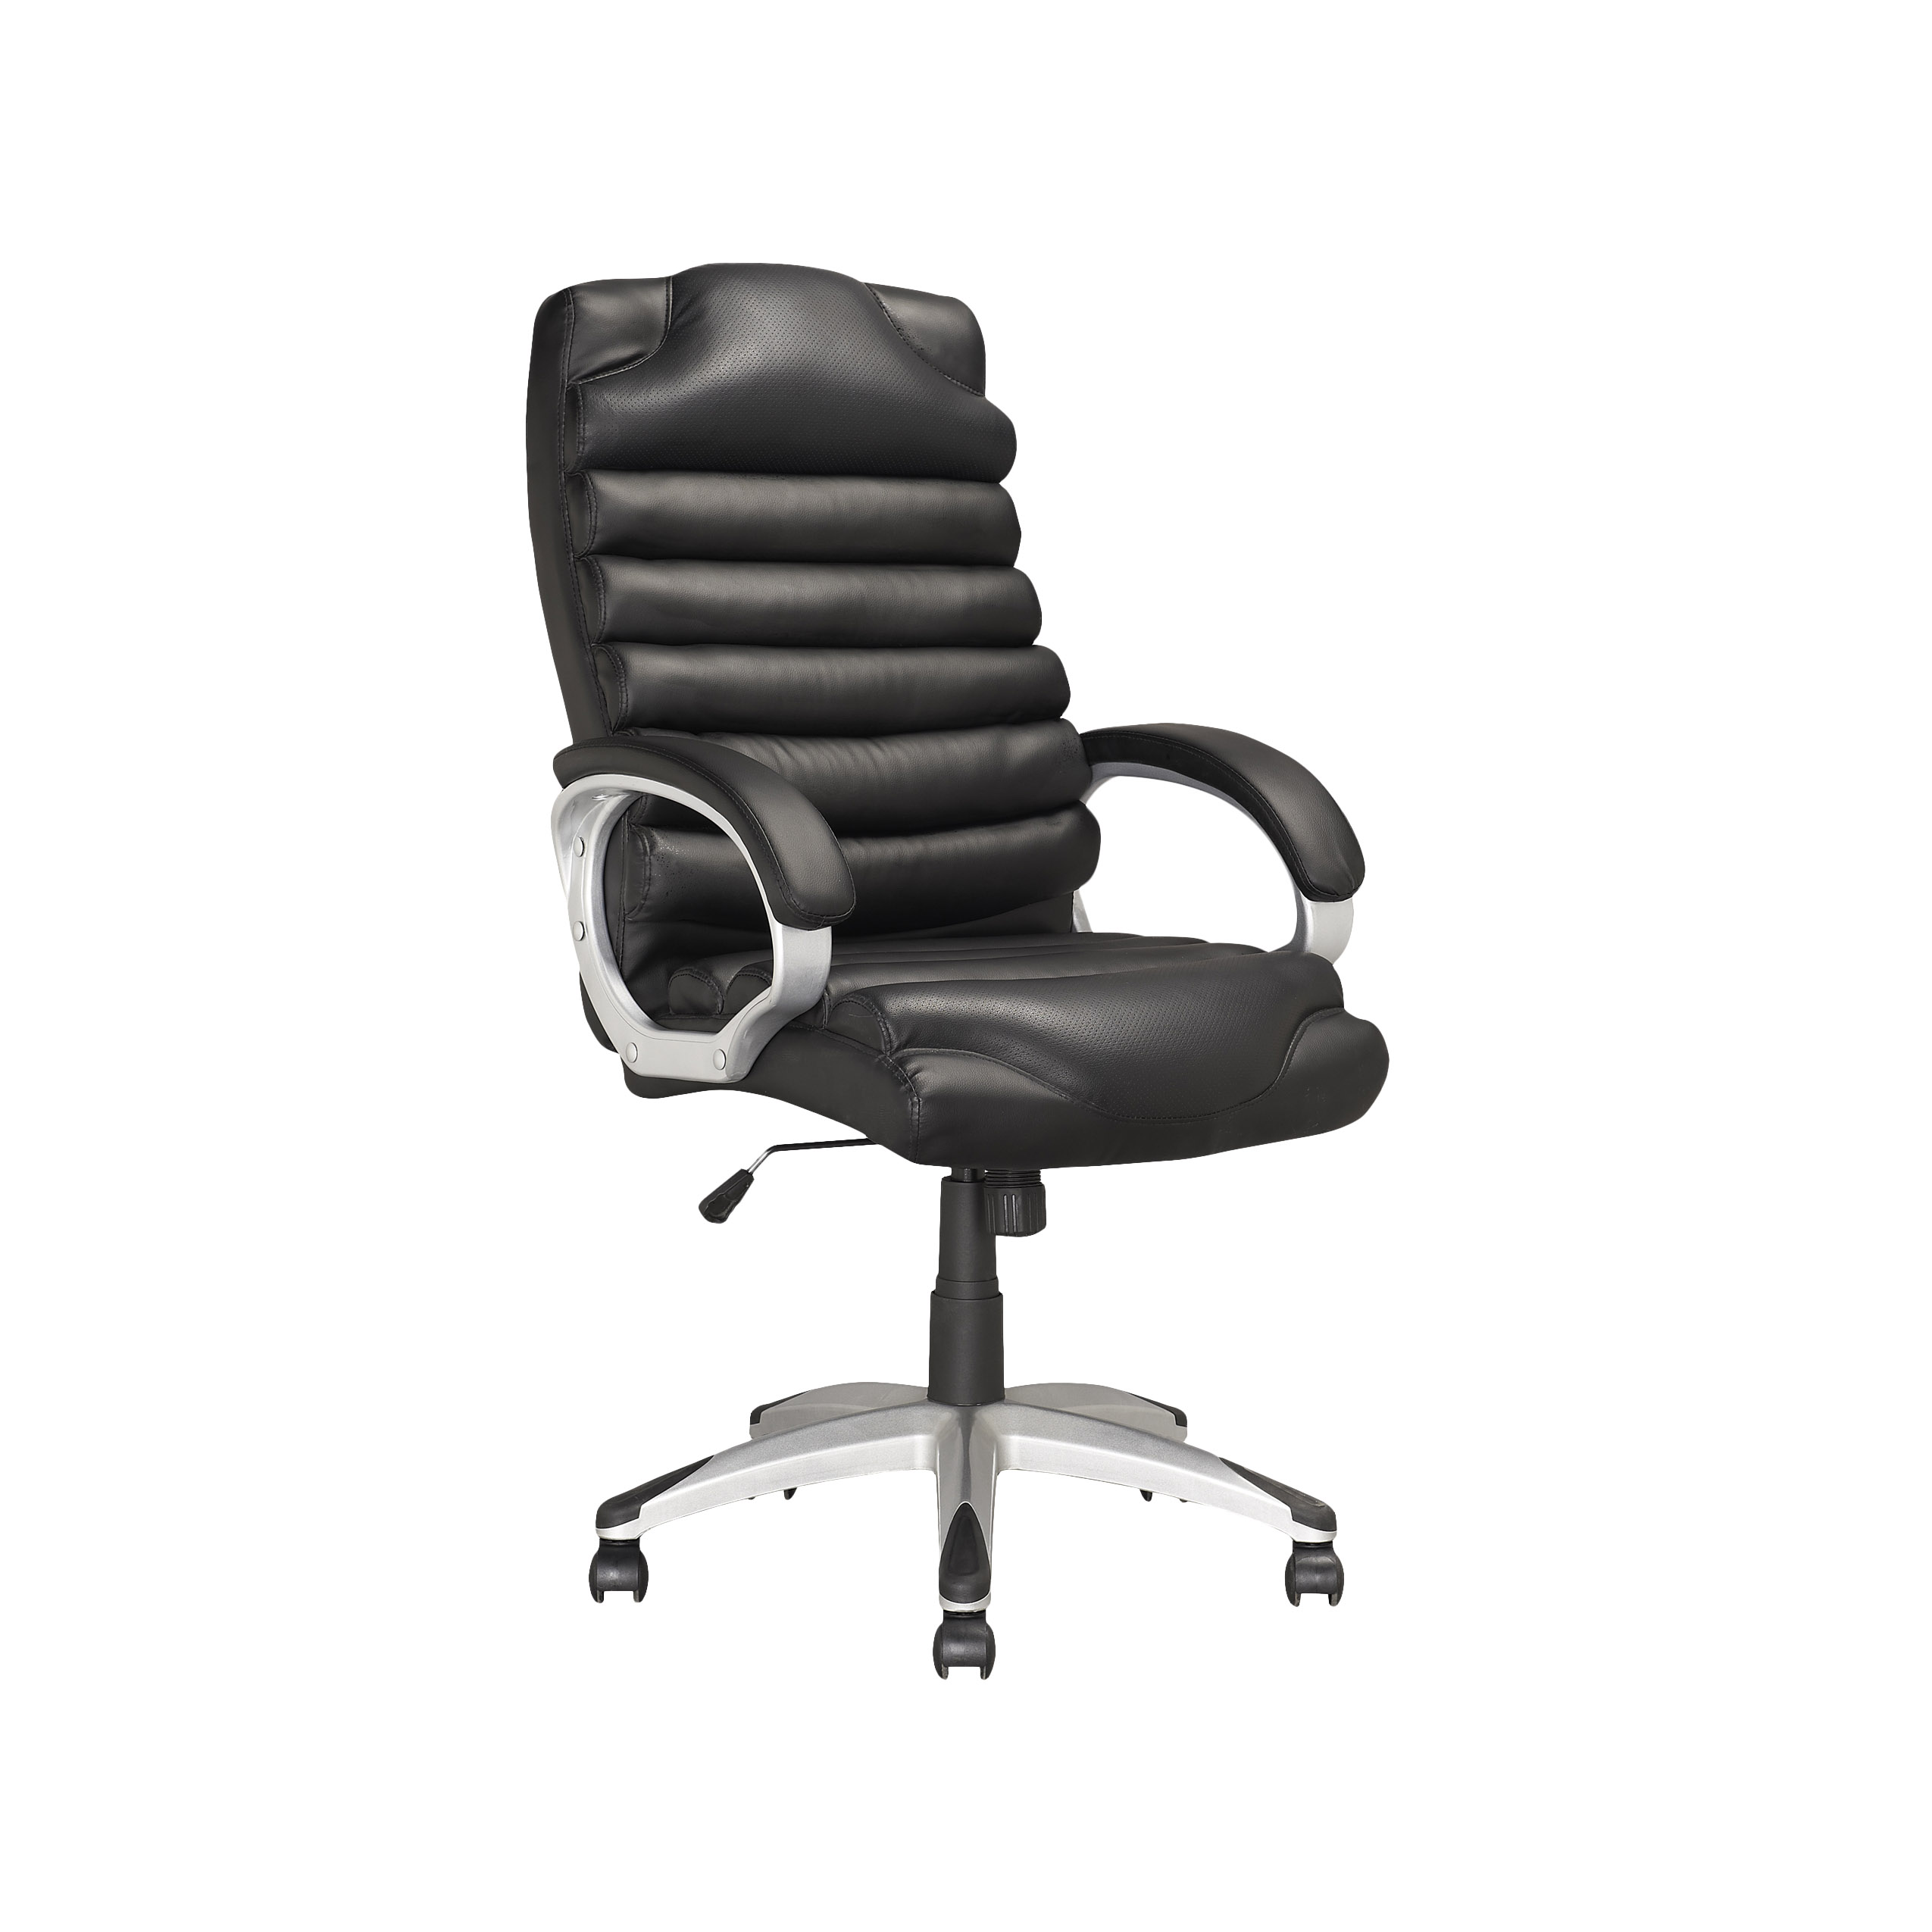 executive office chairs specifications sure fit chair slipcovers corliving in black leatherette